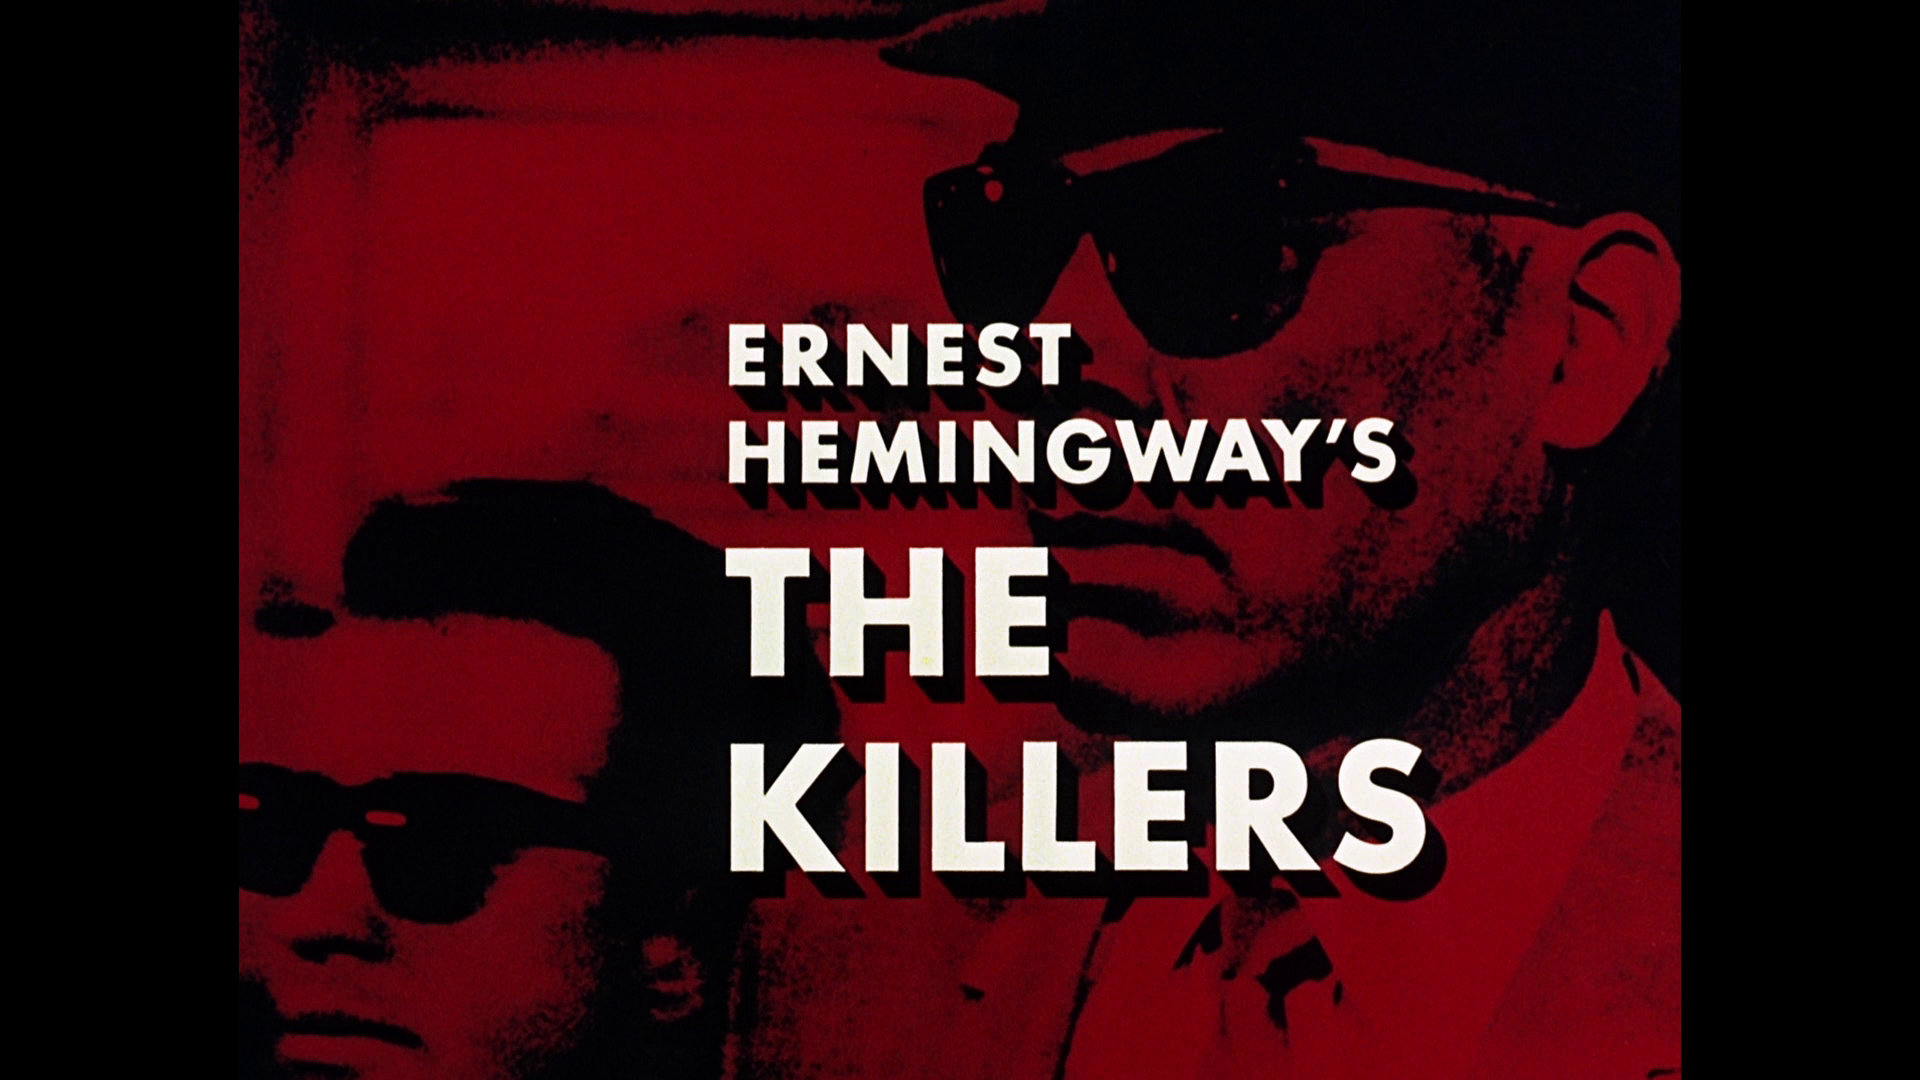 analysis of the killers ernest hemingway Ernest hemingway (1899-1961) a selective list of online literary criticism and analysis for the twentieth-century novelist and short-story writer ernest hemingway, favoring signed articles by recognized scholars and articles published in peer-reviewed sources.